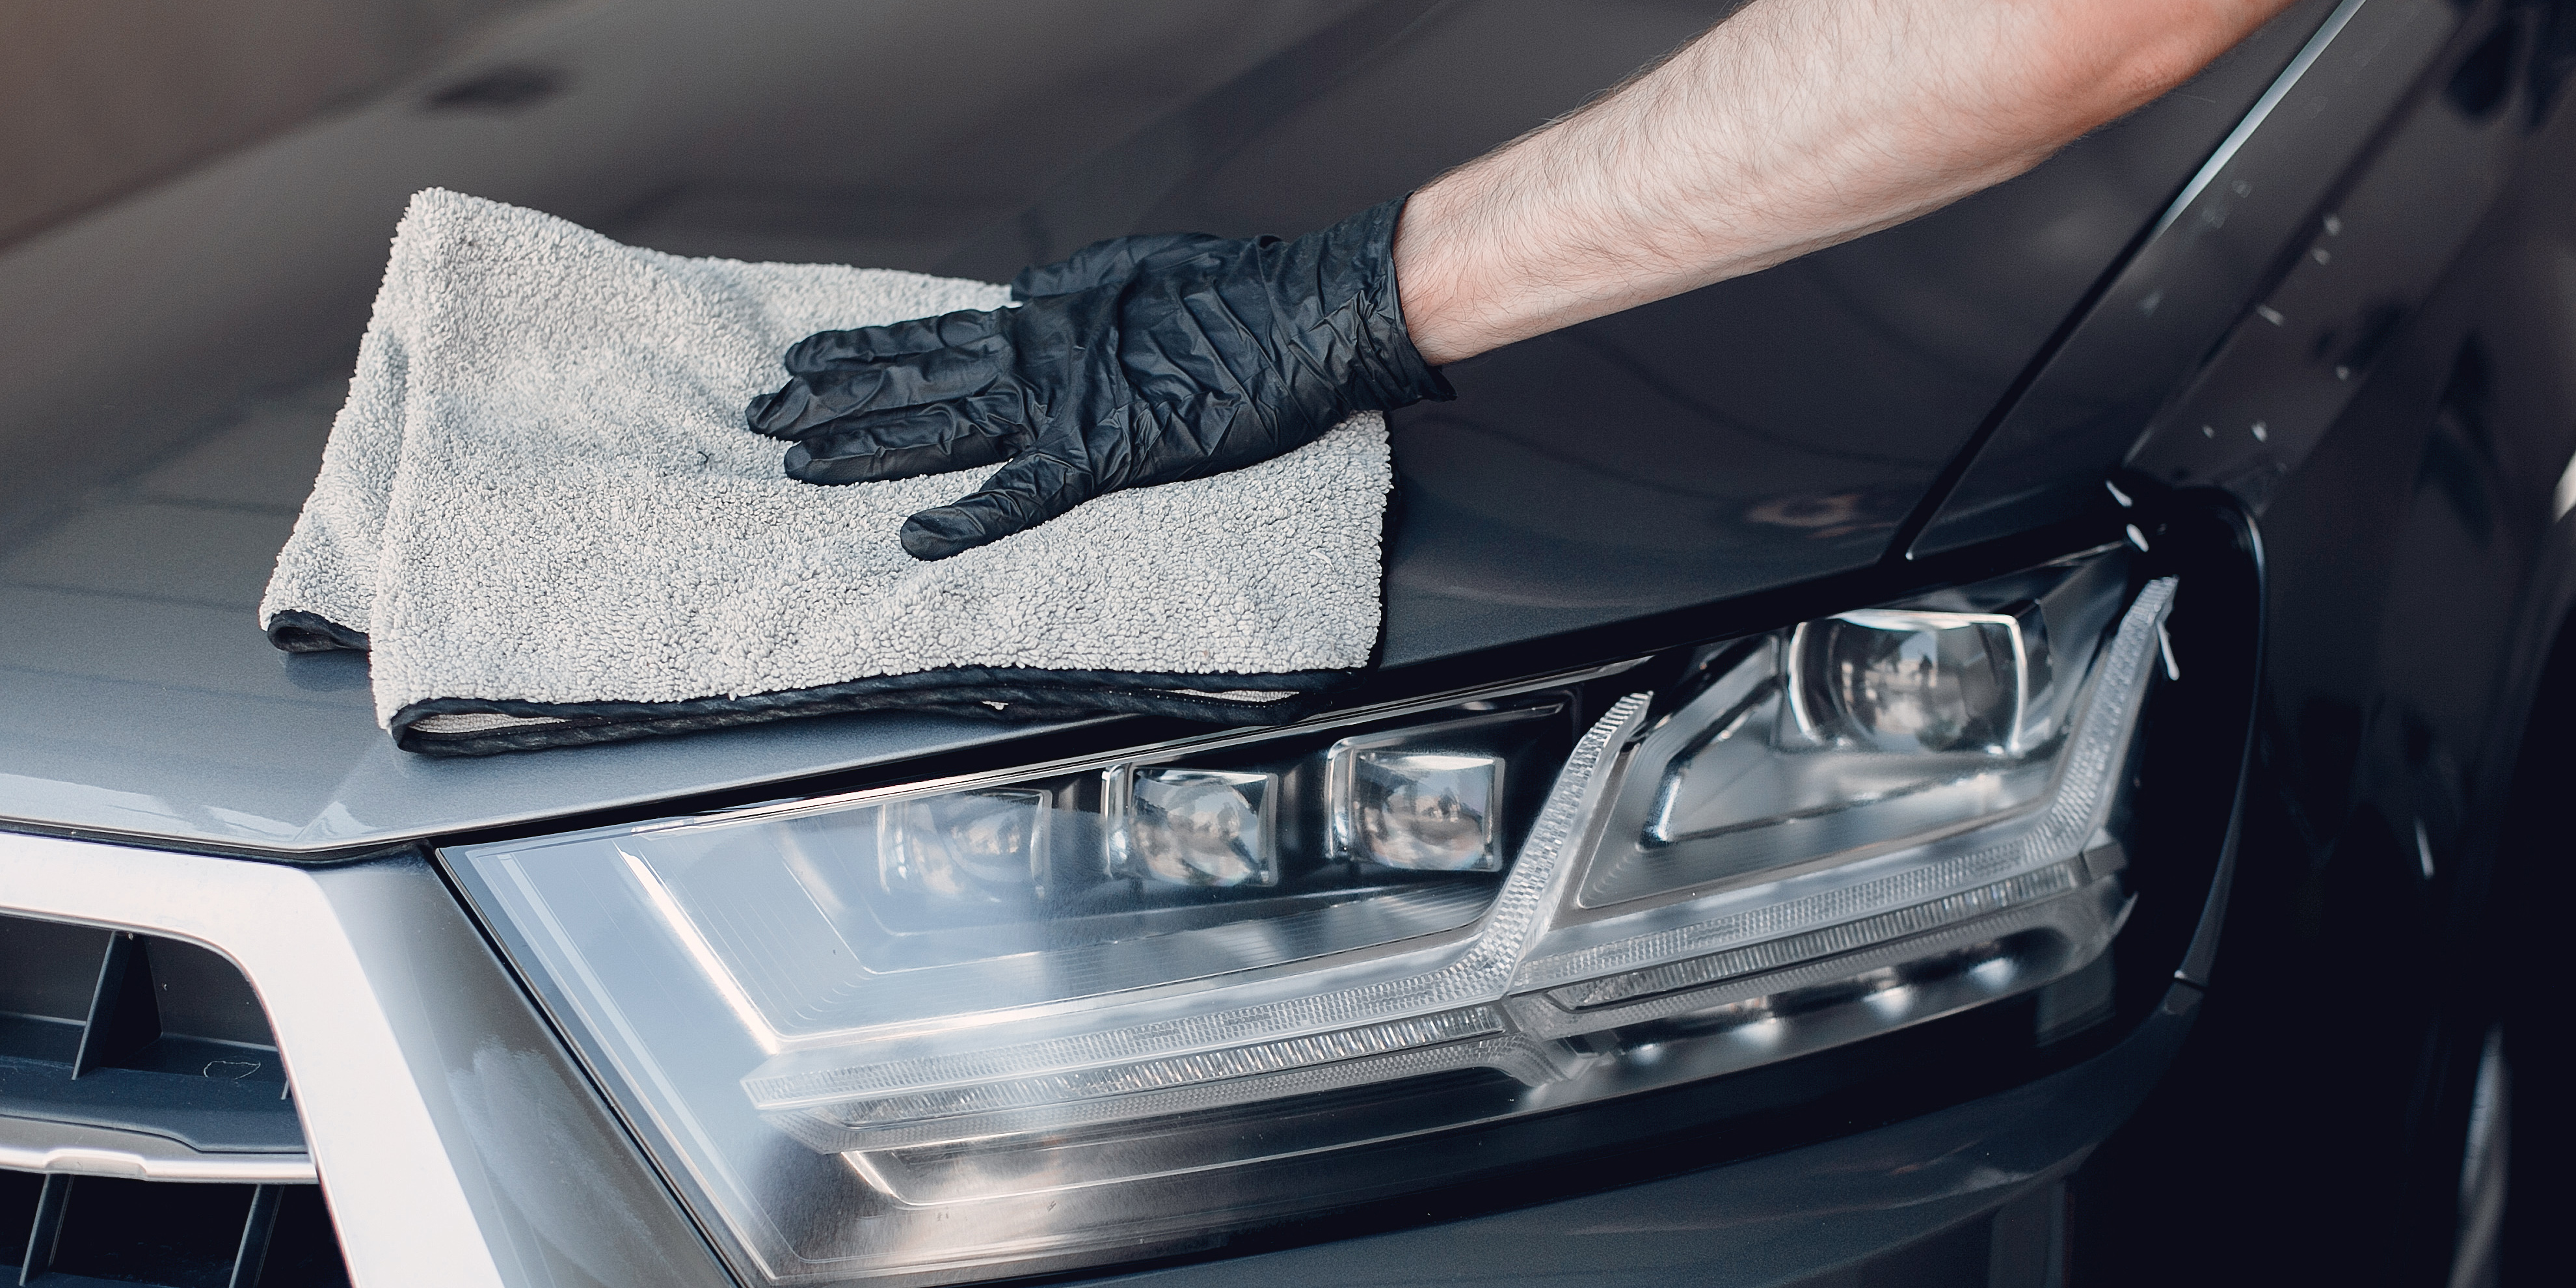 Tips to Keep Your Vehicle Clean